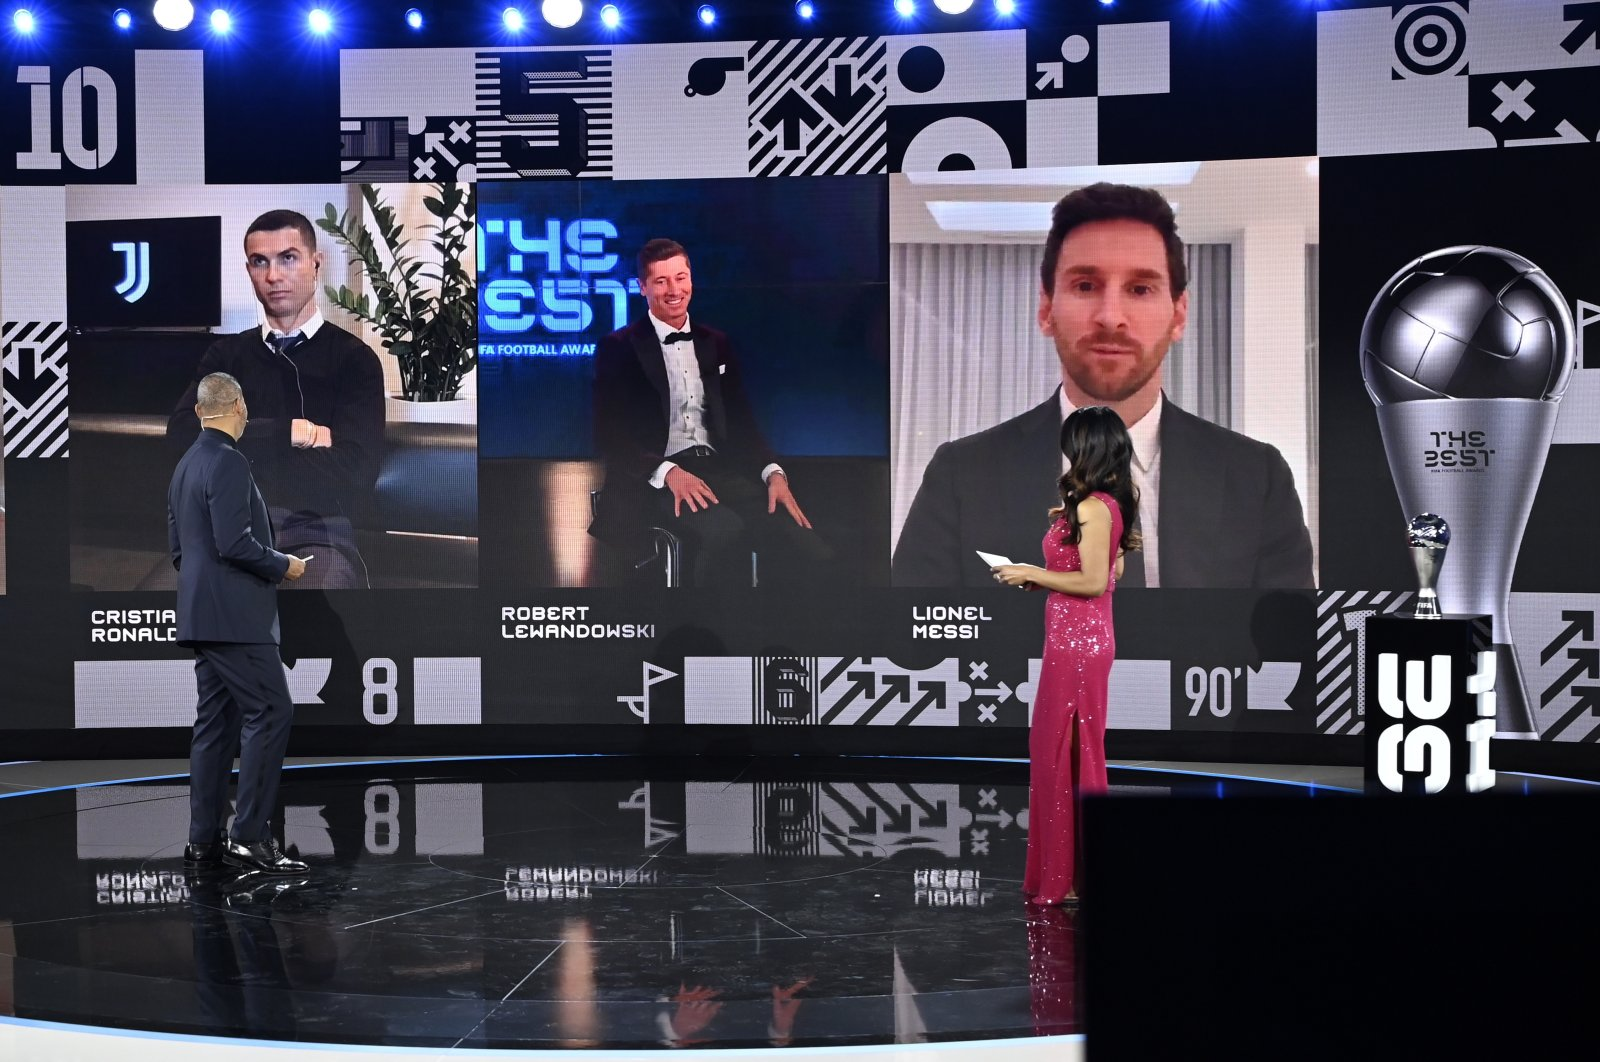 Bayern Munich striker Robert Lewandowski (C on screen) appears on screen with fellow finalists Cristiano Ronaldo (L) and Lionel Messi after receiving the Best FIFA Men's Player Award during the Best FIFA Football Awards virtual TV show broadcast from the FIFA headquarters in Zurich, Switzerland, Dec. 17, 2020.  (EPA Photo)